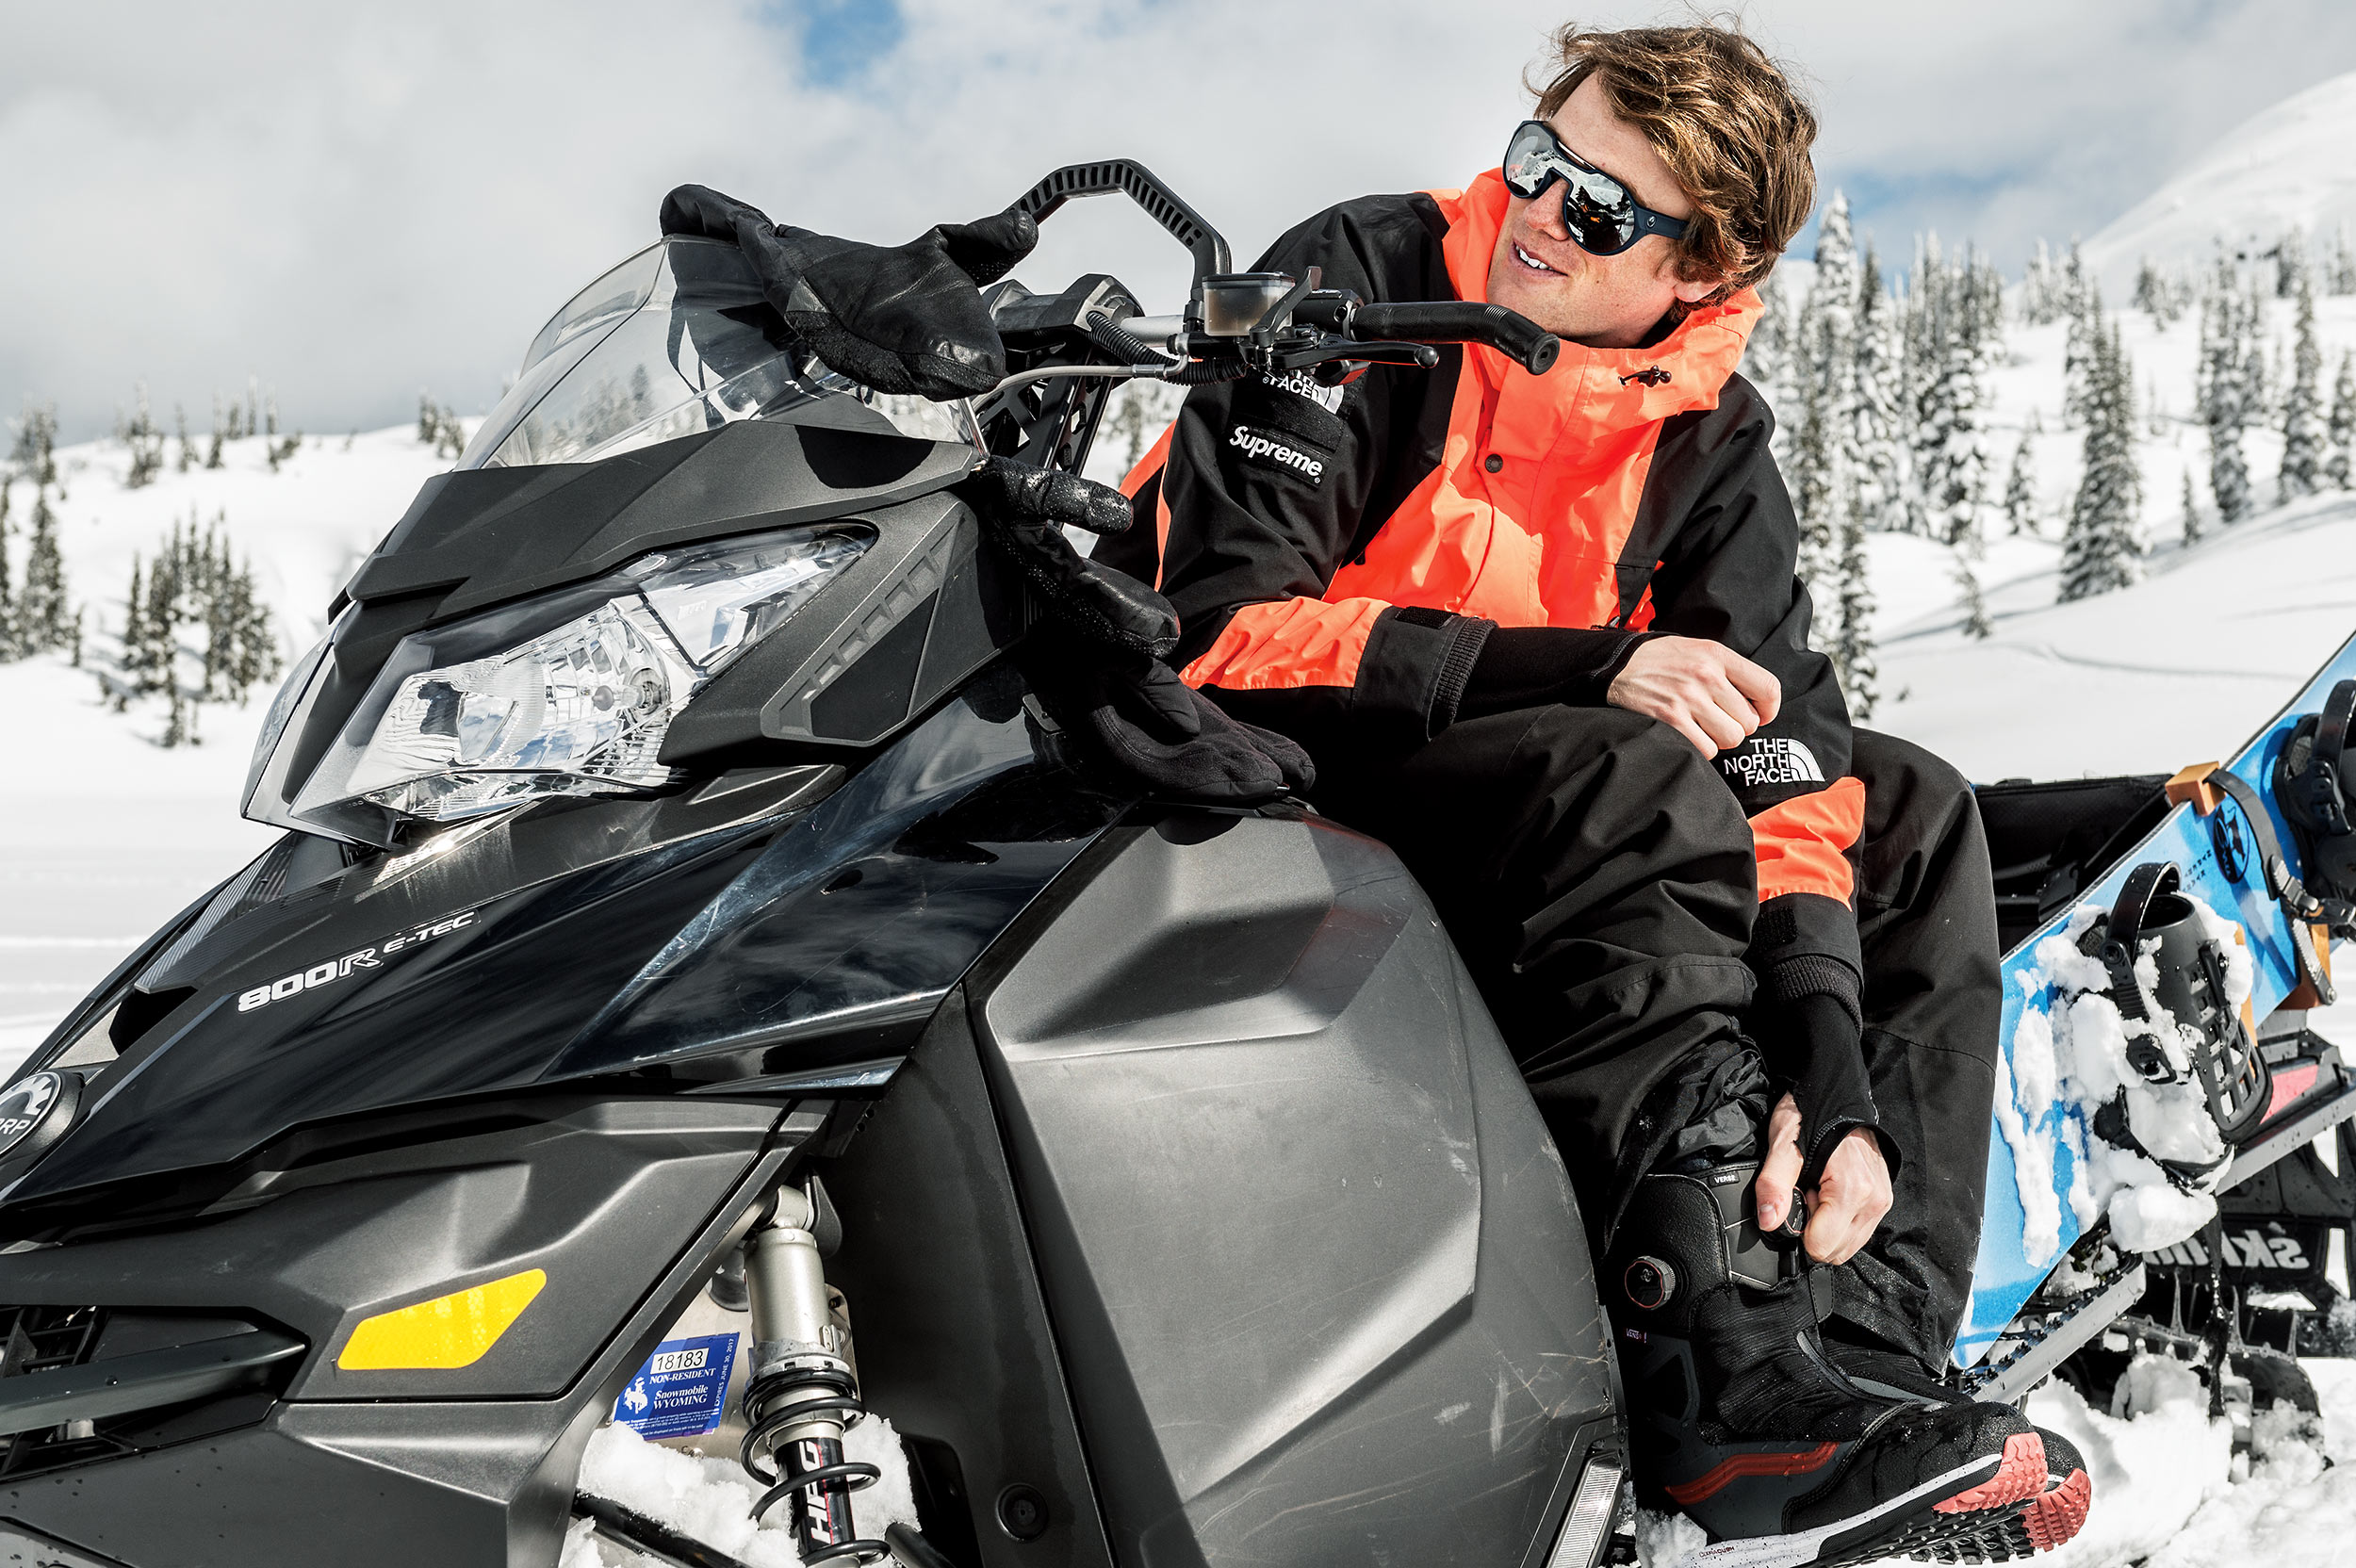 Pro Setups: Style and Function with Blake Paul | Snowboarder